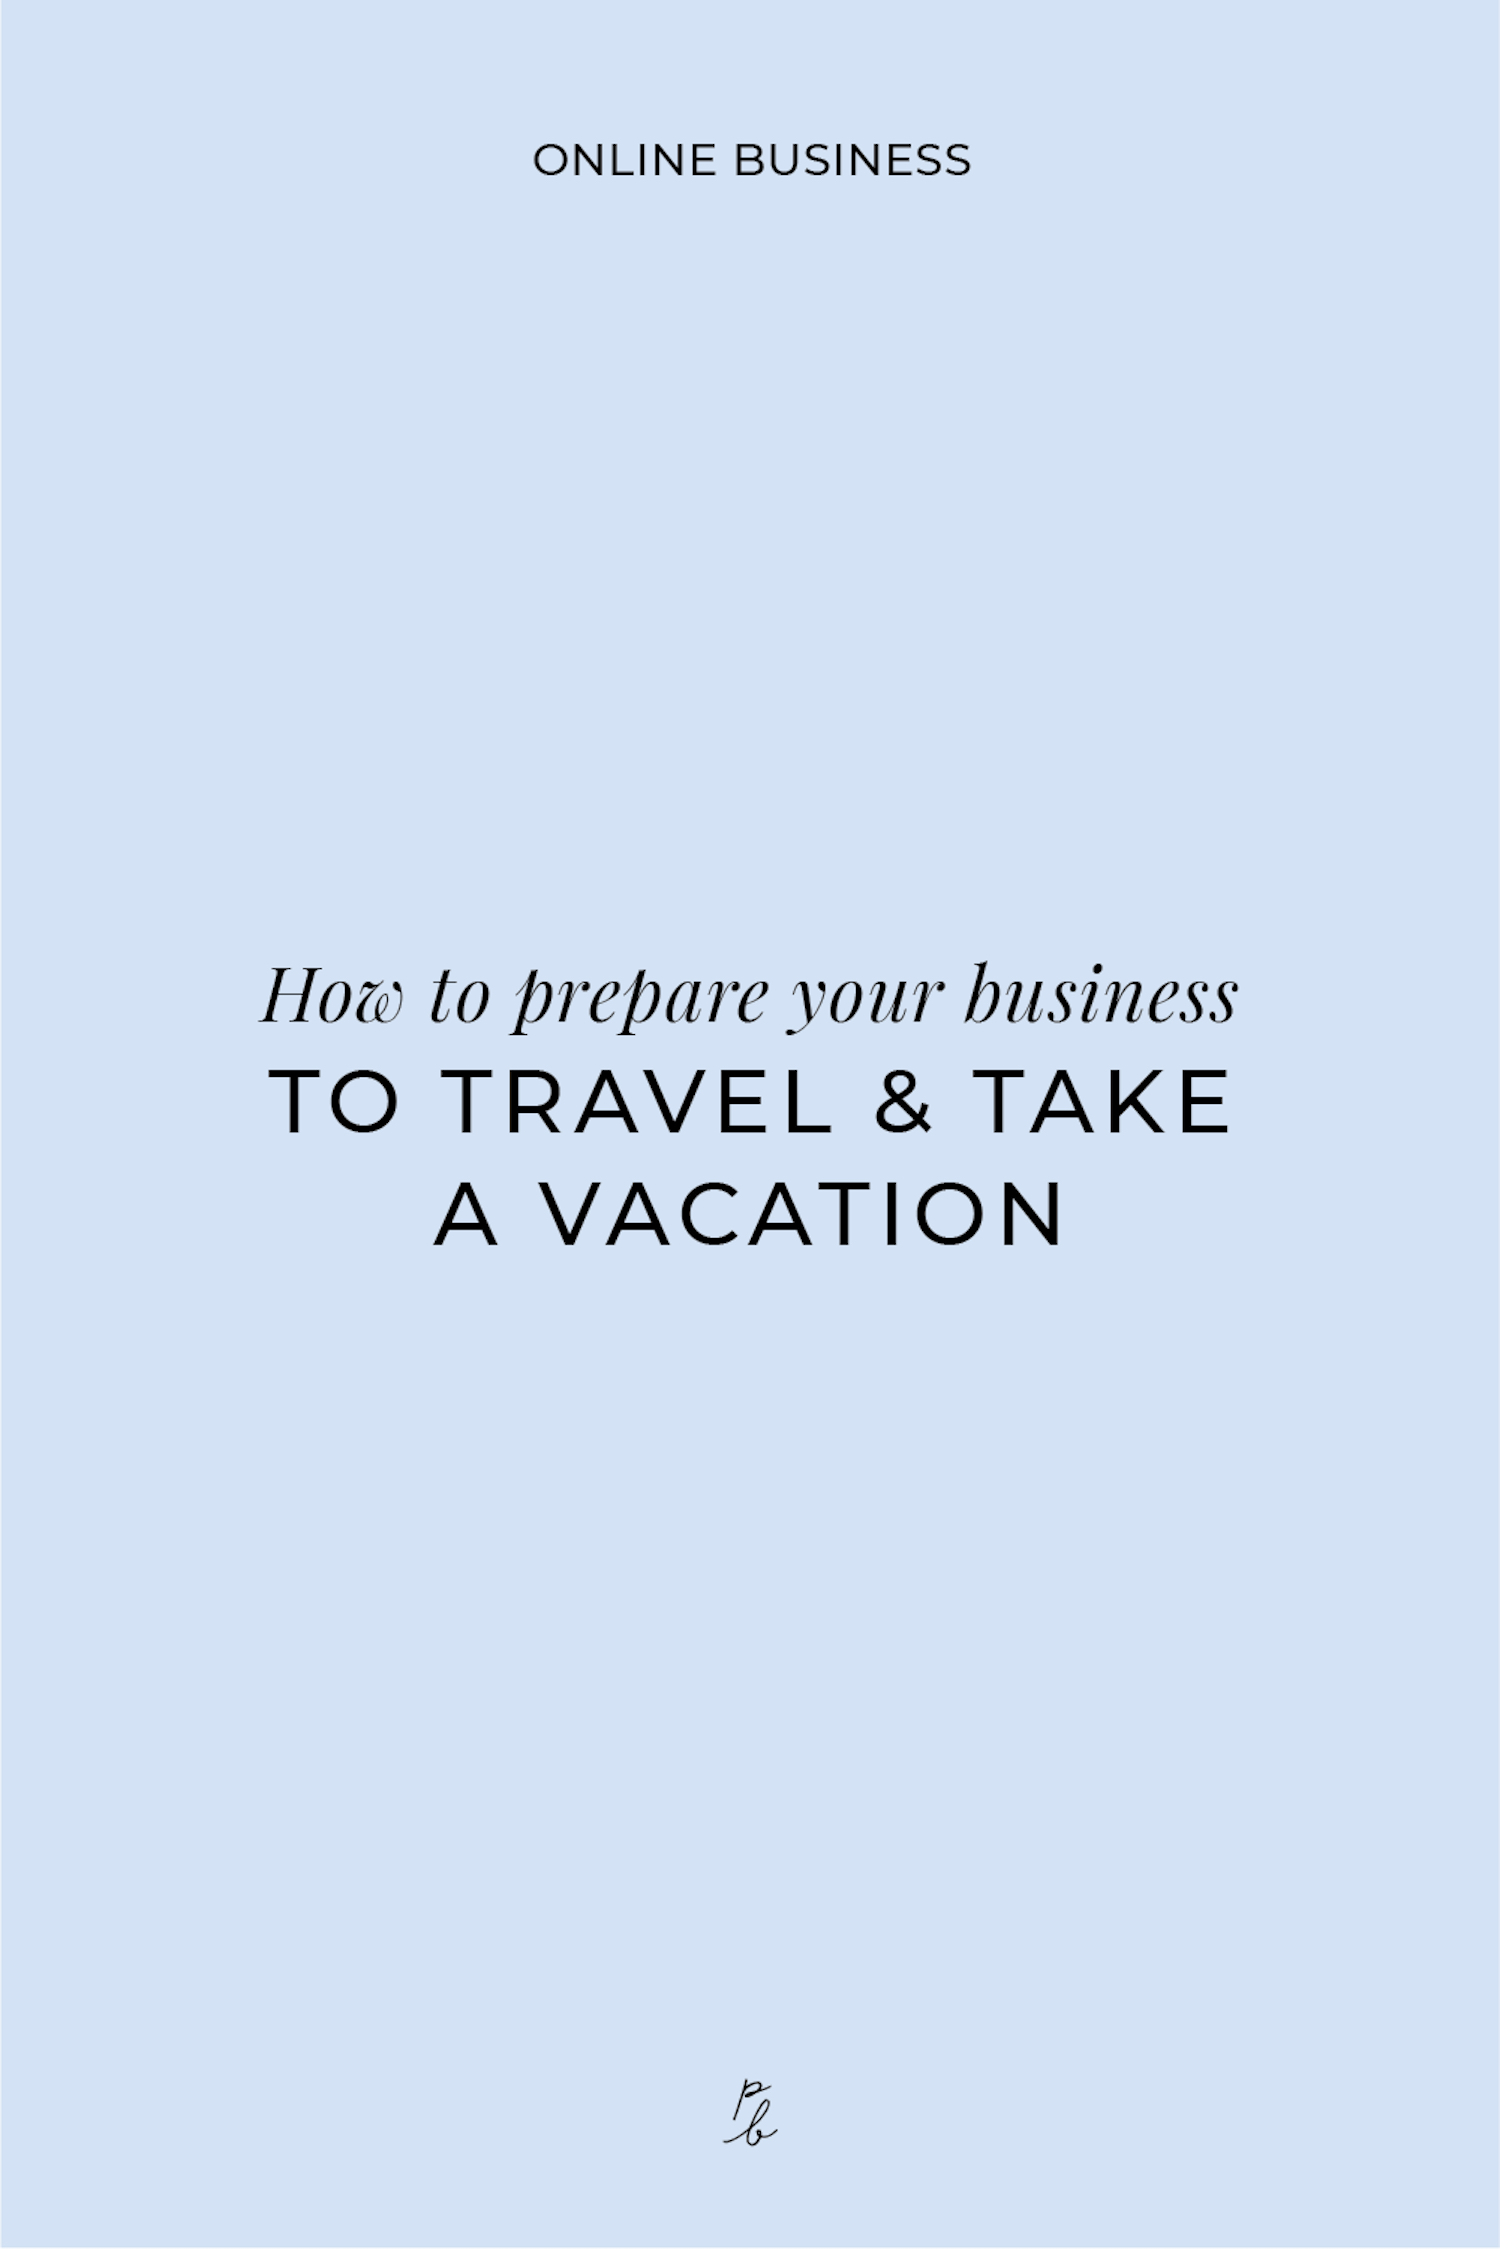 How to prepare your business to travel & take a vacation-07.jpeg